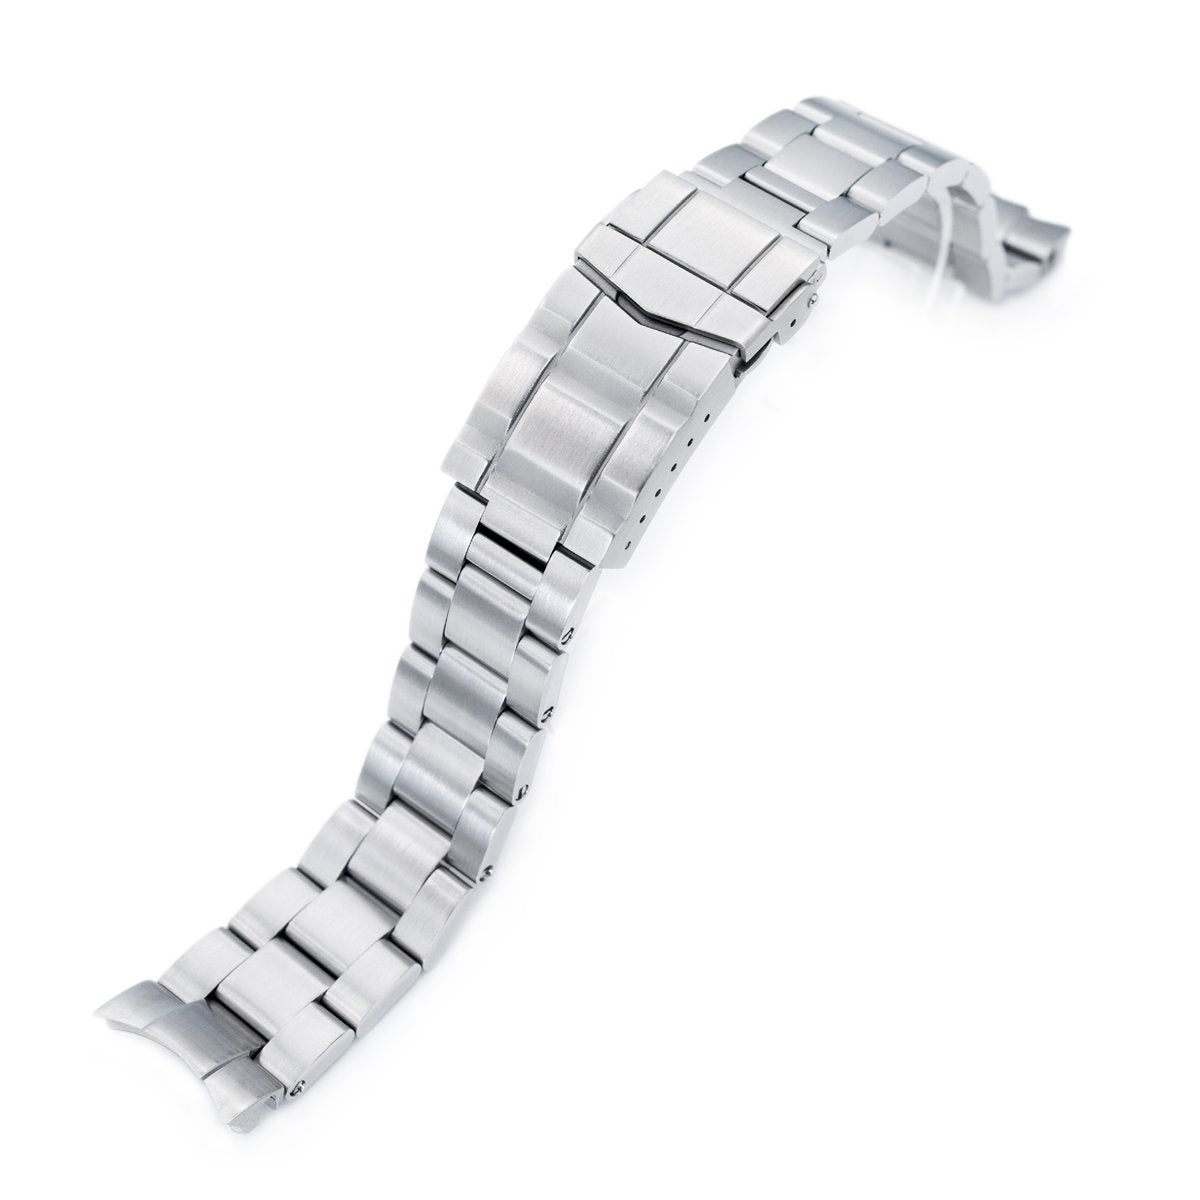 20mm Super-O Boyer 316L Stainless Steel Watch Bracelet for Seiko Mechanical Automatic SARB035 SUB Clasp Brushed Strapcode Watch Bands